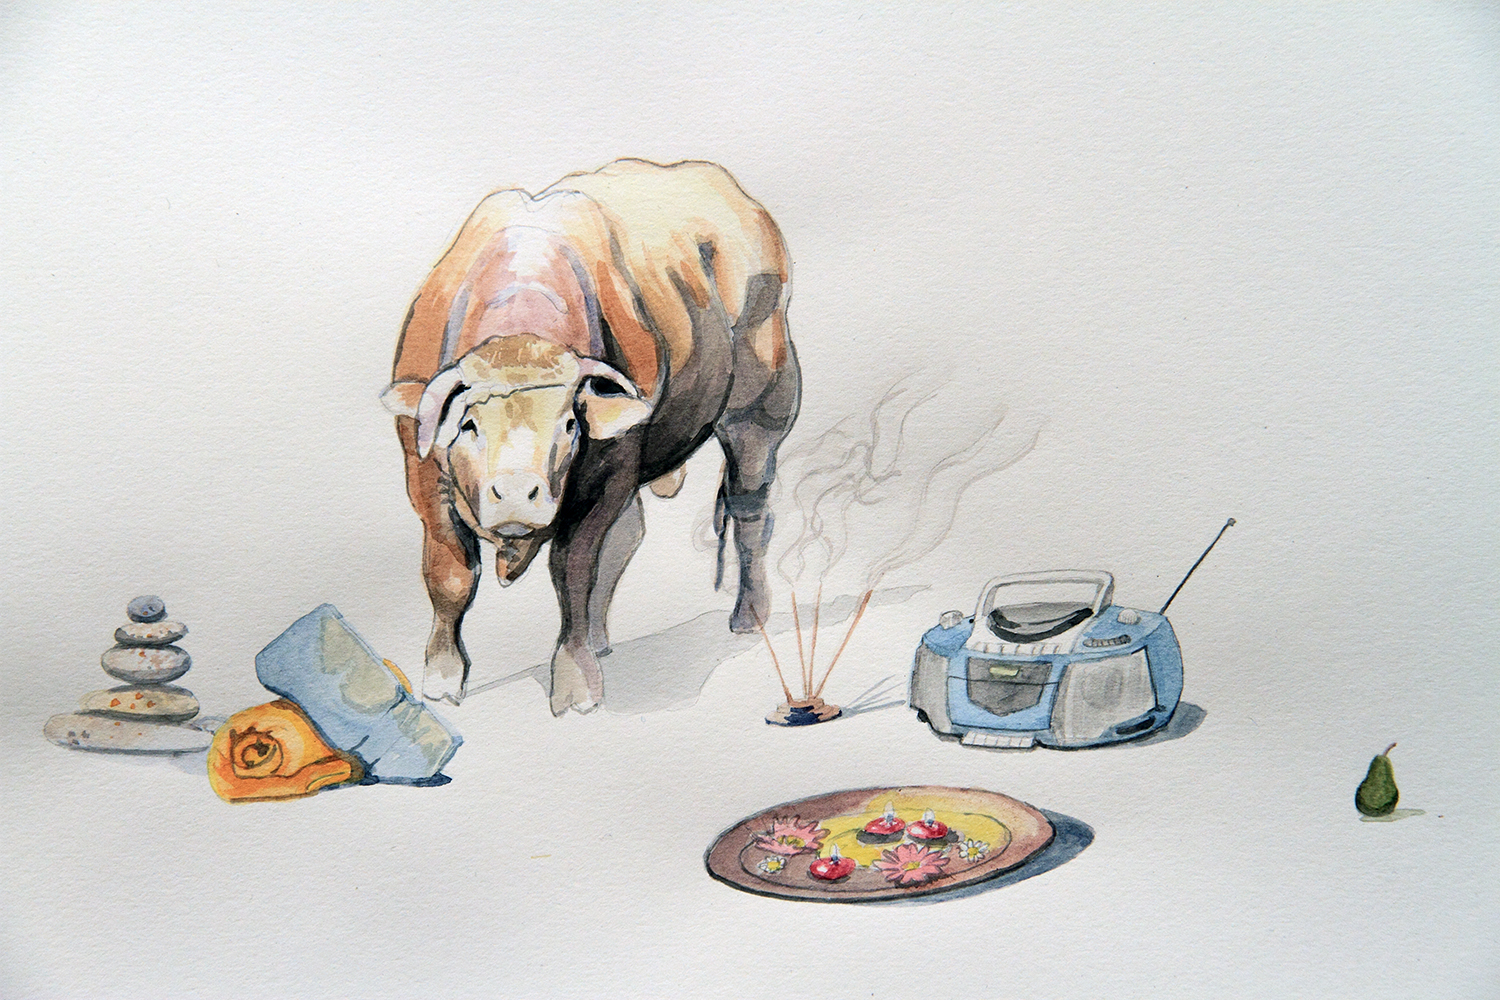 Load of Bull, 2010, Watercolour on paper, 29.7 x 42.0 cm, Photo: Michaela Gleave